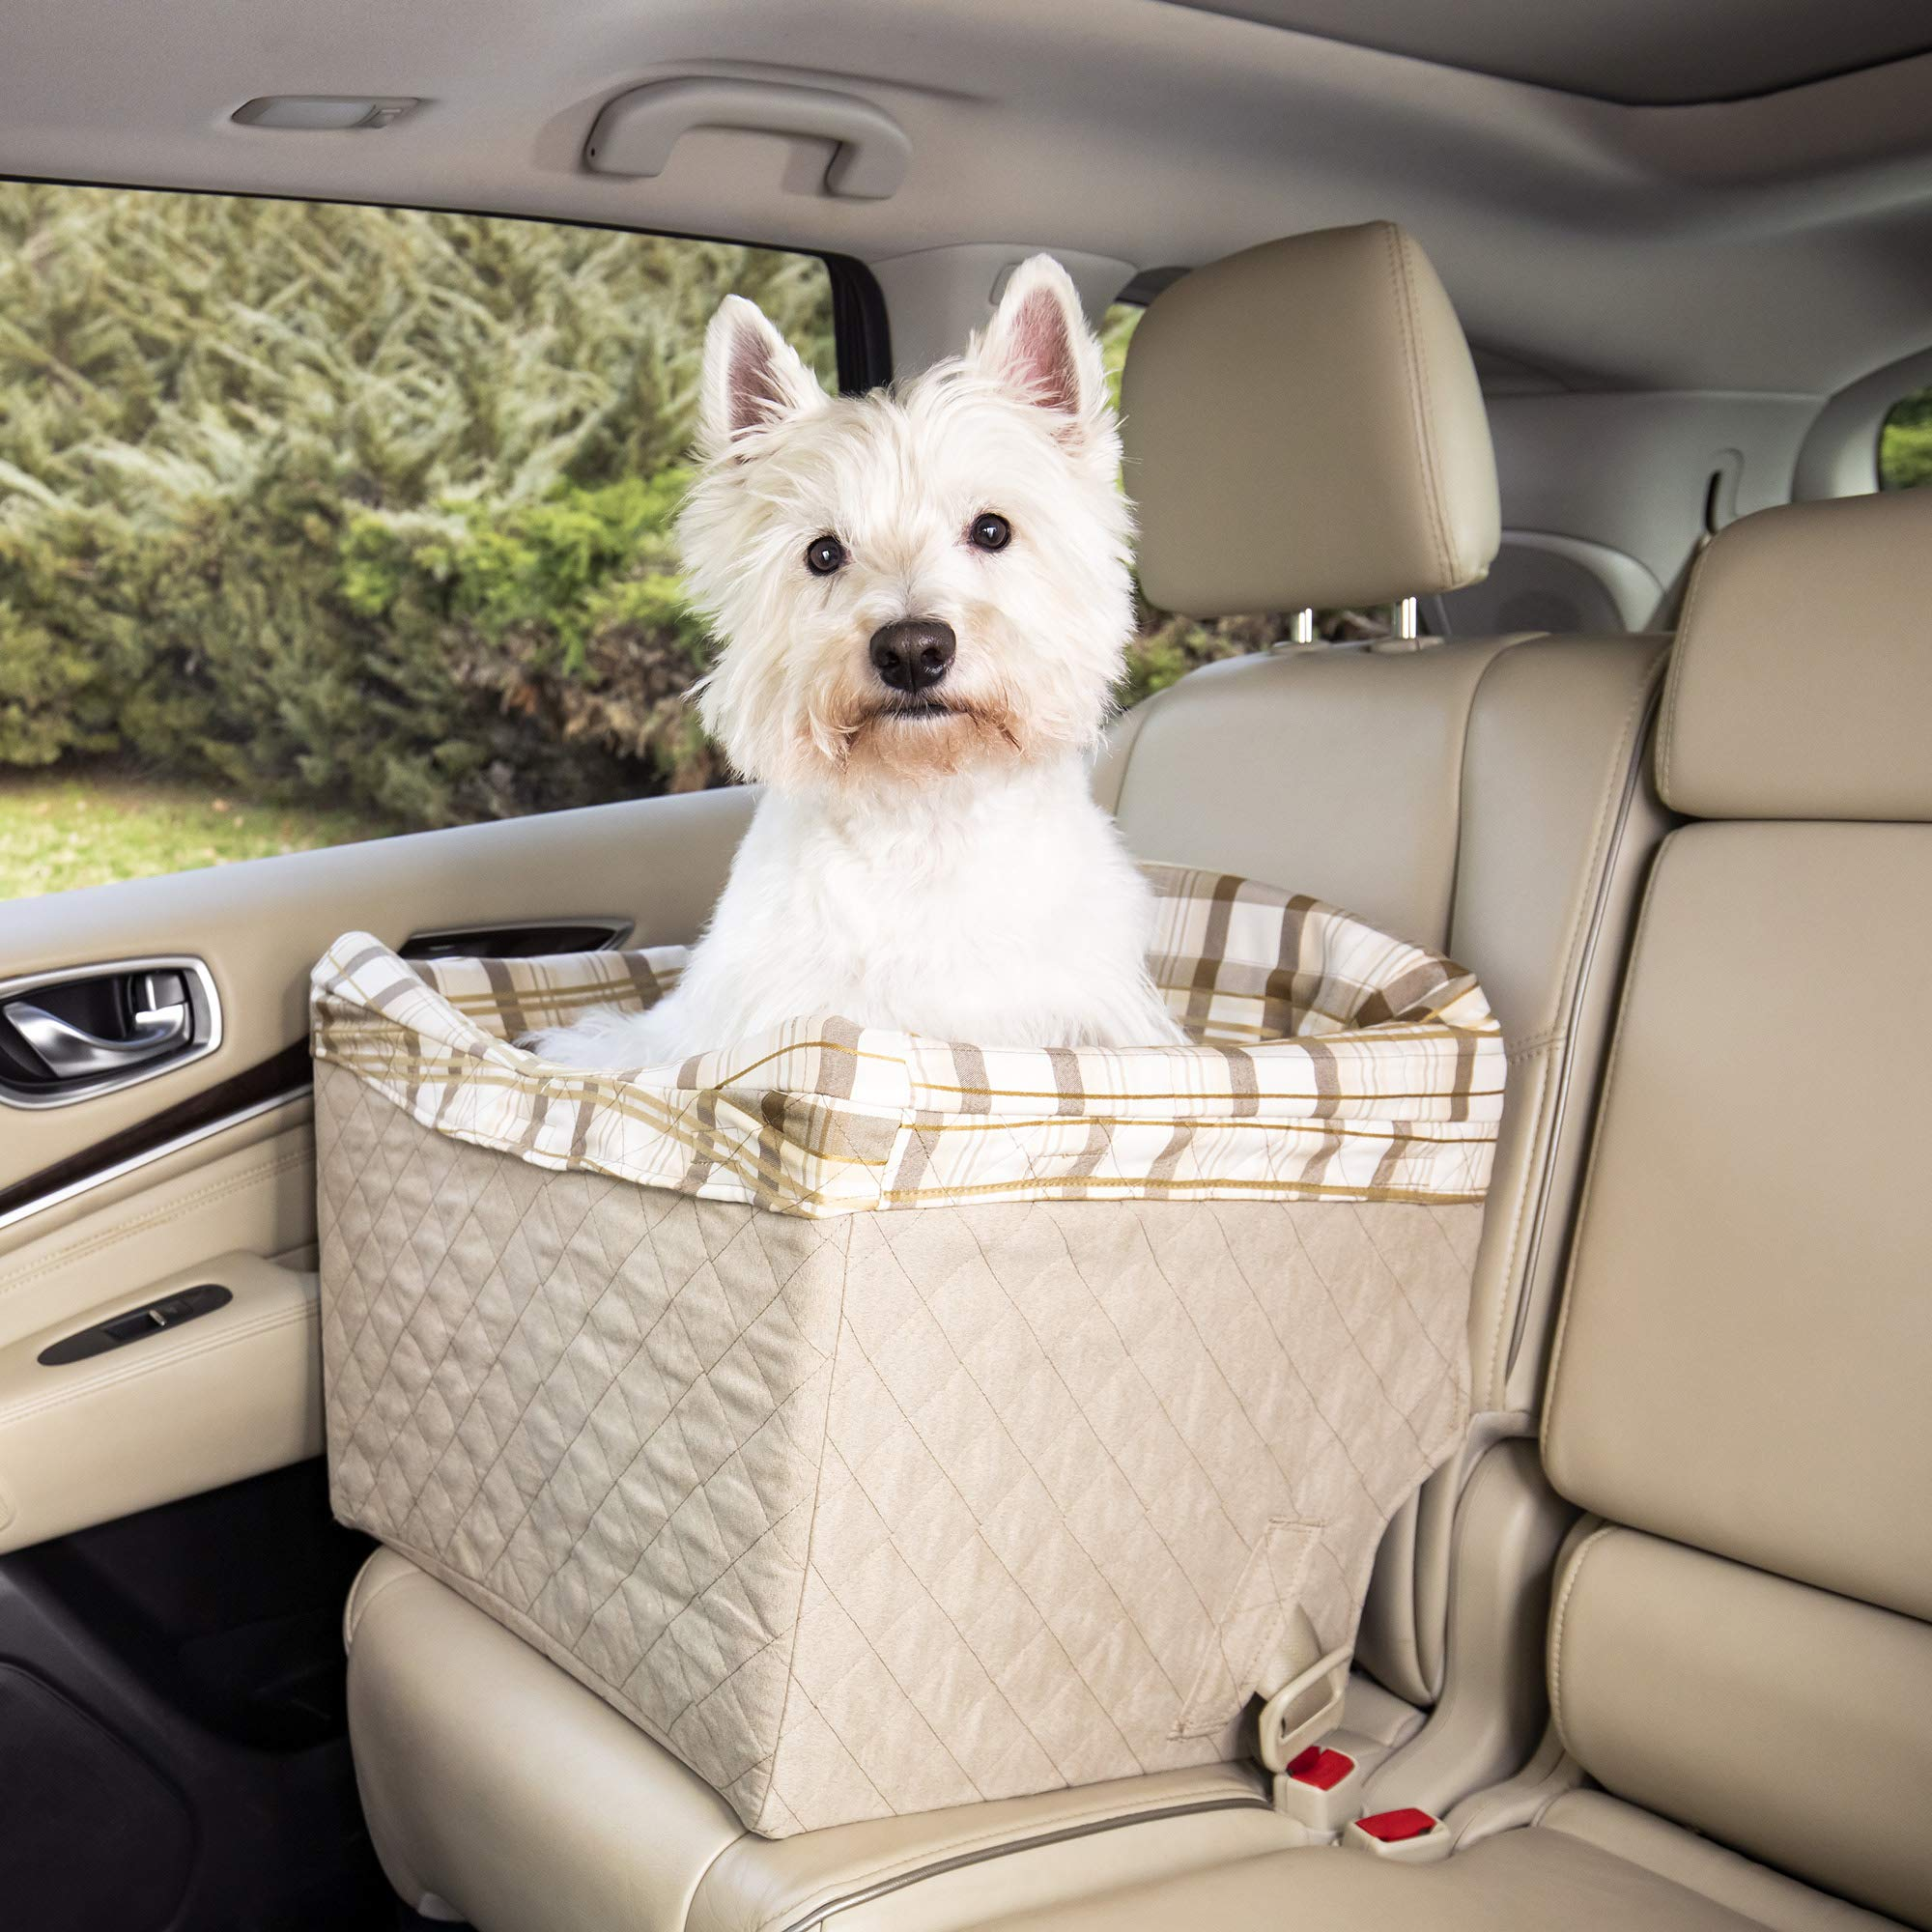 PetSafe Jumbo Deluxe Pet Safety Seat - Car Booster Seat for Dogs up to 35 lb. by PetSafe